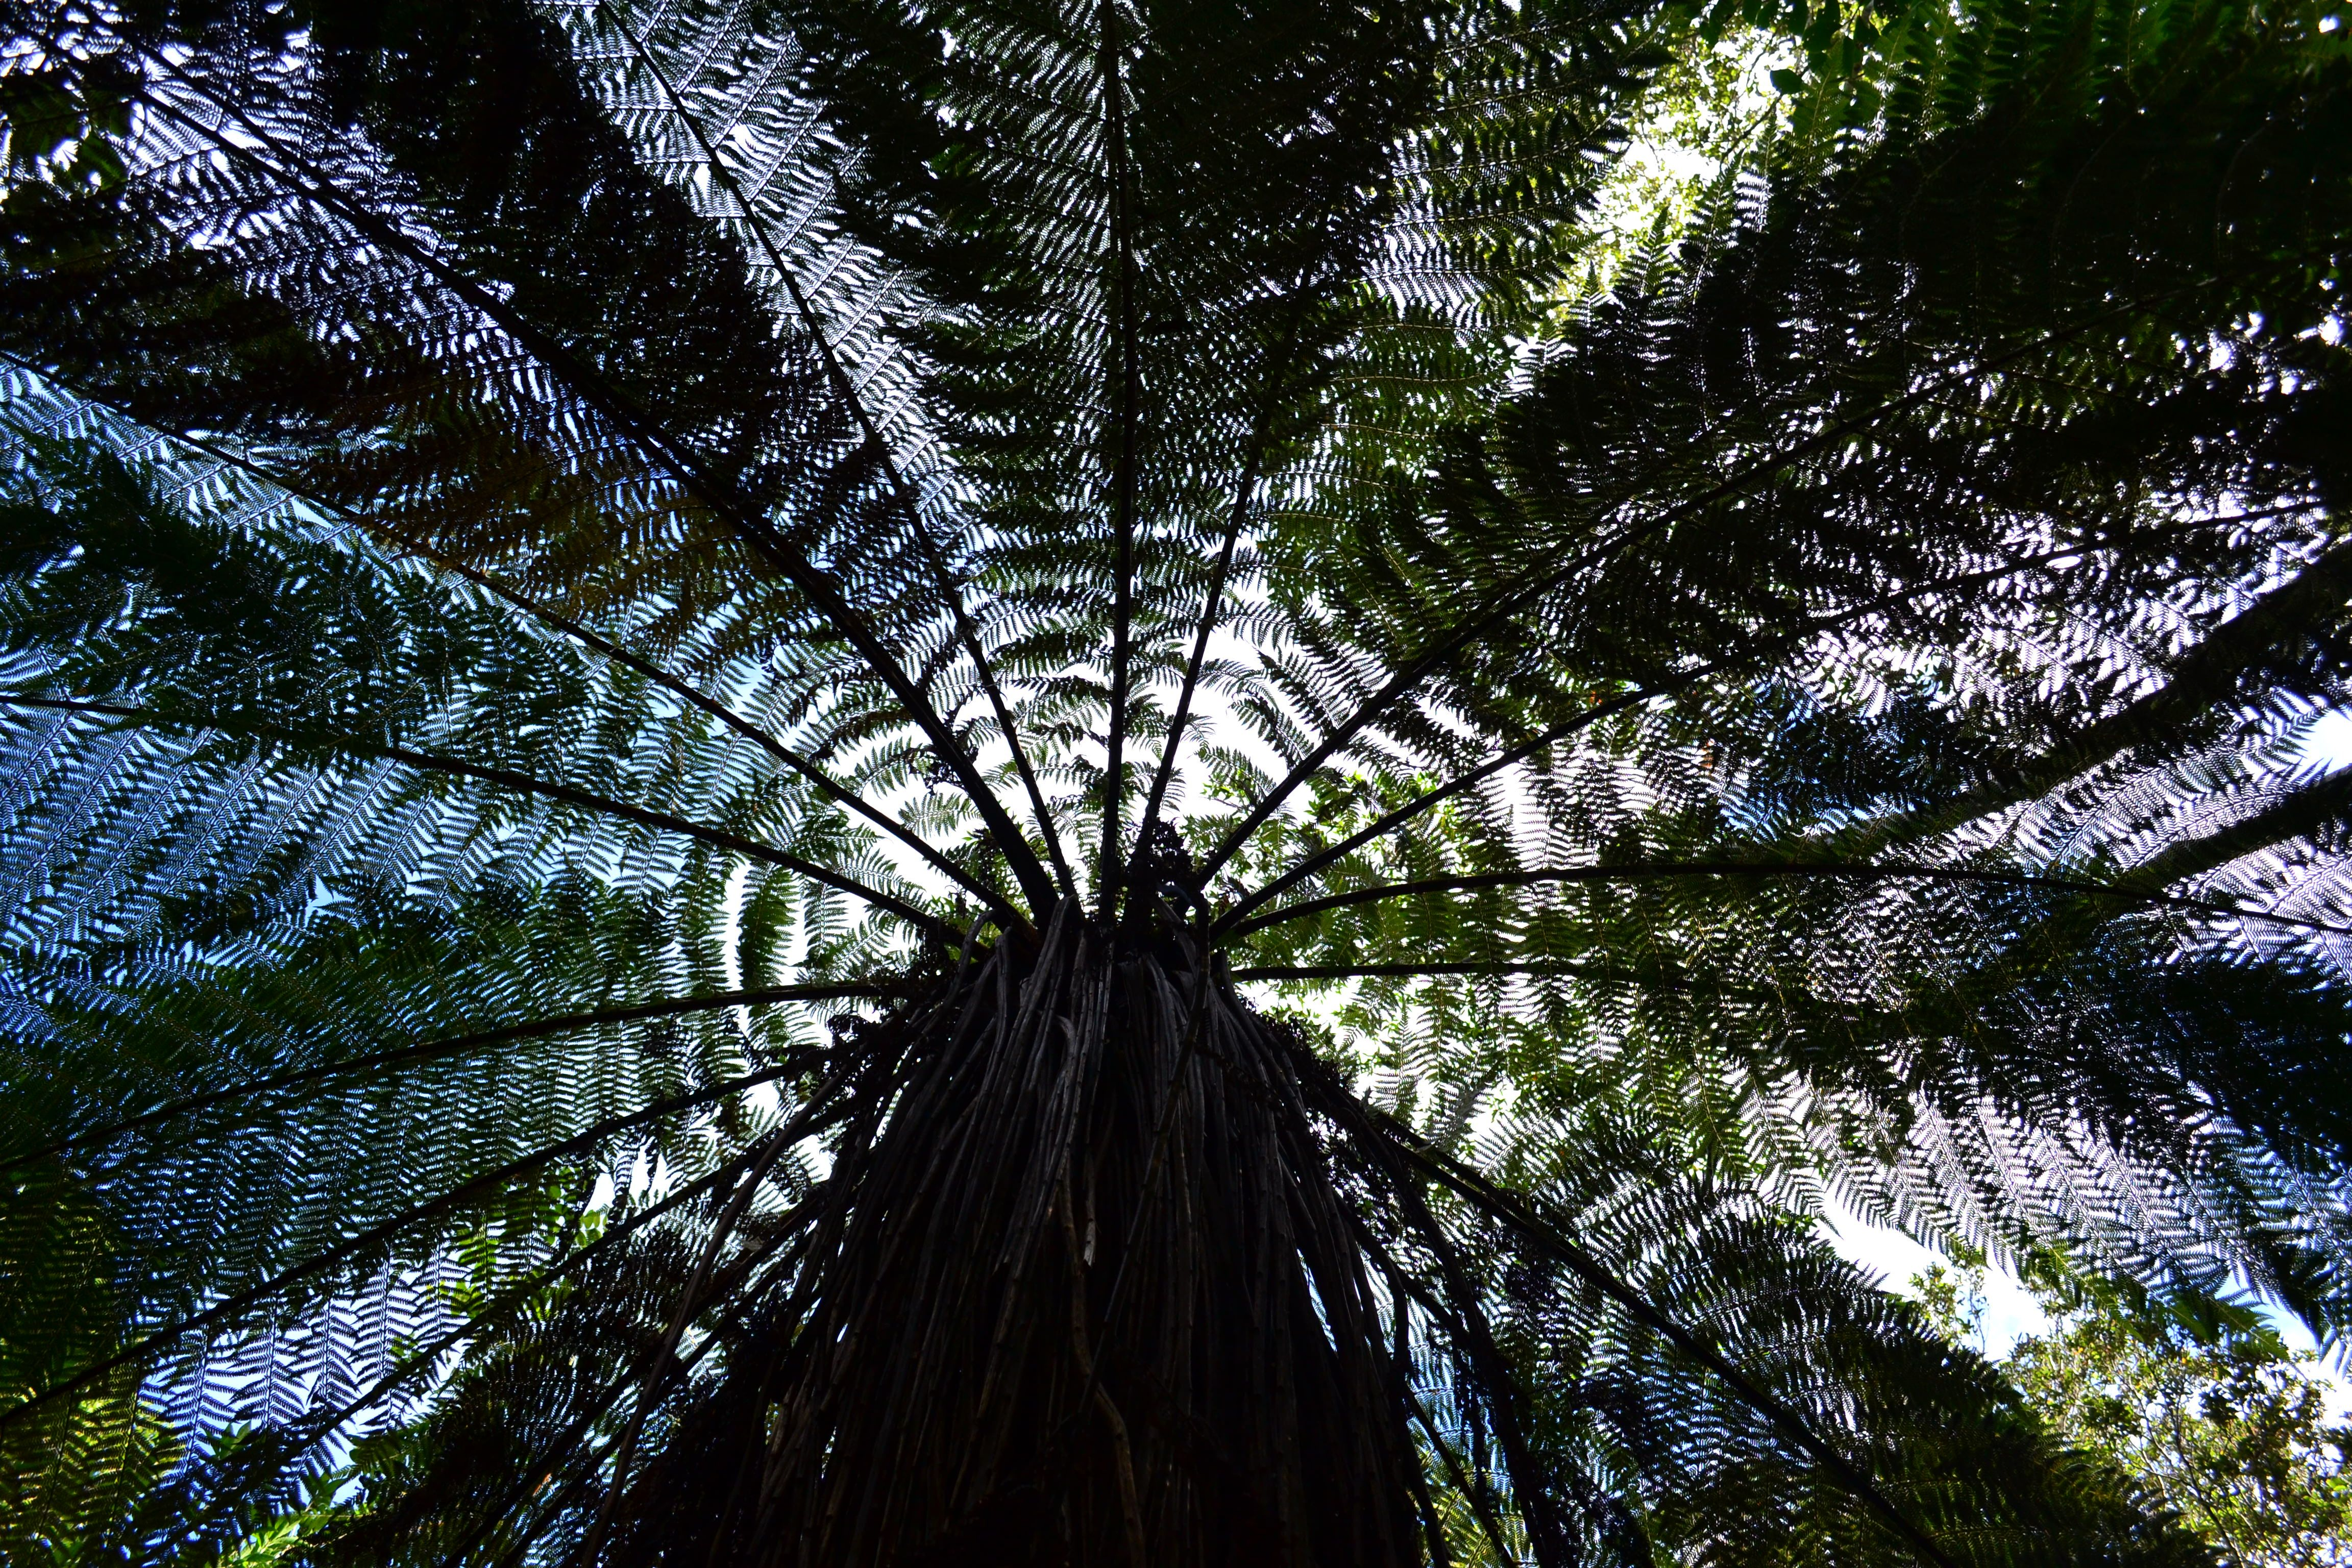 I love looking up through the canopy in the bush at the